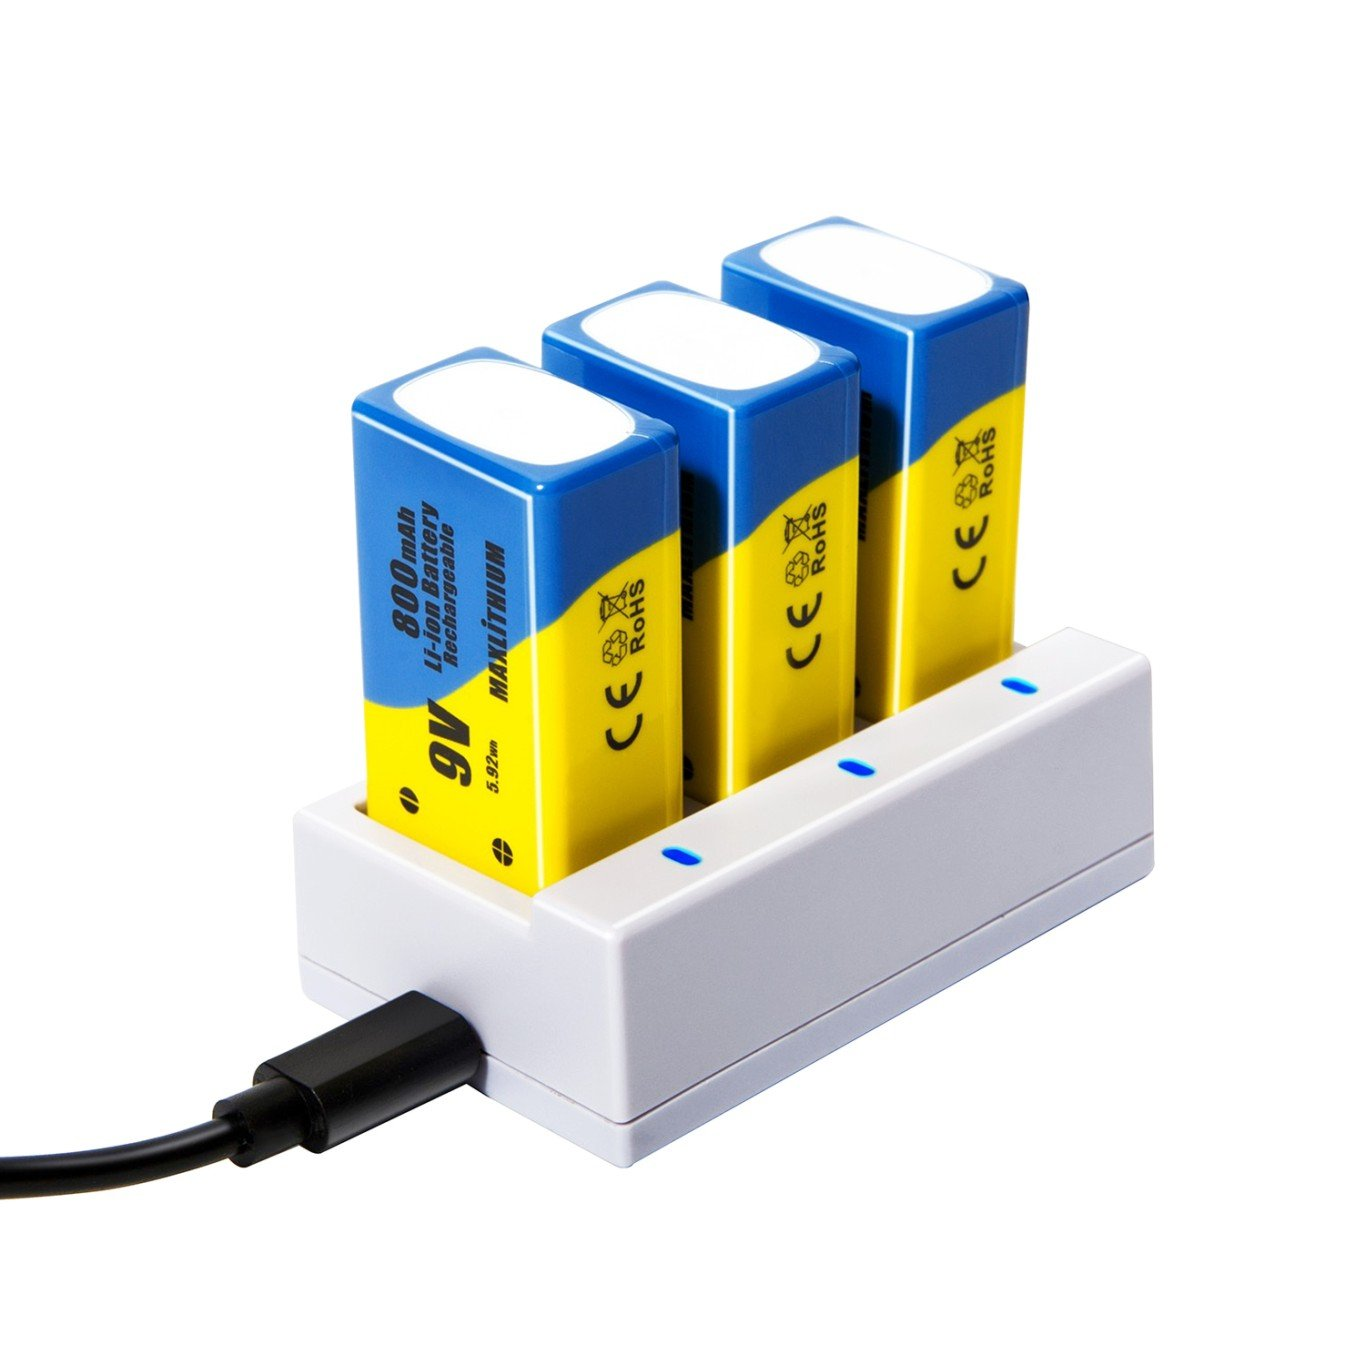 9v Batteries Rechargeable Li-ion 800mAh 3 Packs with Quick Charger